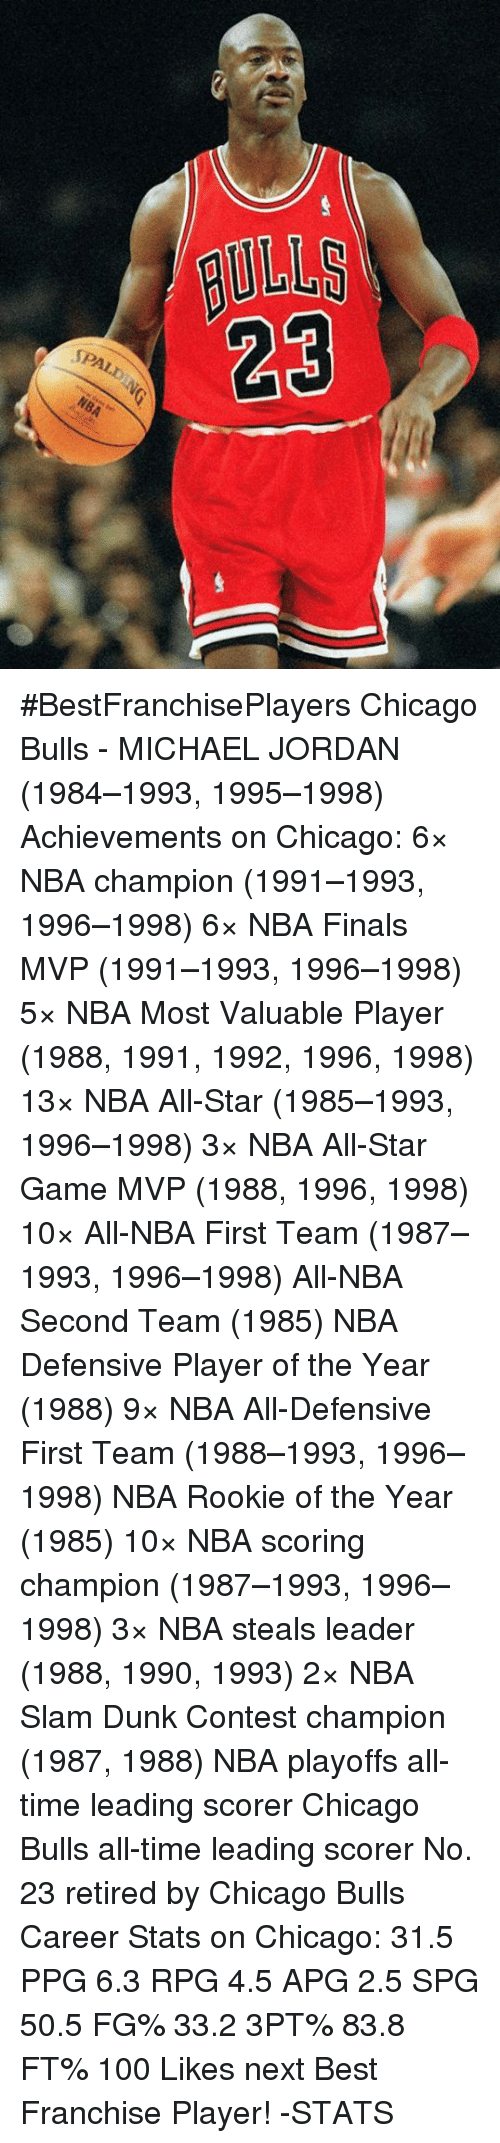 All Star, Chicago Bulls, and Dunk: BULLS  SPALD  NBA #BestFranchisePlayers  Chicago Bulls - MICHAEL JORDAN (1984–1993, 1995–1998)  Achievements on Chicago: 6× NBA champion (1991–1993, 1996–1998) 6× NBA Finals MVP (1991–1993, 1996–1998) 5× NBA Most Valuable Player (1988, 1991, 1992, 1996, 1998) 13× NBA All-Star (1985–1993, 1996–1998) 3× NBA All-Star Game MVP (1988, 1996, 1998) 10× All-NBA First Team (1987–1993, 1996–1998) All-NBA Second Team (1985) NBA Defensive Player of the Year (1988) 9× NBA All-Defensive First Team (1988–1993, 1996–1998) NBA Rookie of the Year (1985) 10× NBA scoring champion (1987–1993, 1996–1998) 3× NBA steals leader (1988, 1990, 1993) 2× NBA Slam Dunk Contest champion (1987, 1988) NBA playoffs all-time leading scorer Chicago Bulls all-time leading scorer No. 23 retired by Chicago Bulls  Career Stats on Chicago: 31.5 PPG 6.3 RPG 4.5 APG 2.5 SPG 50.5 FG% 33.2 3PT% 83.8 FT%  100 Likes next Best Franchise Player!  -STATS